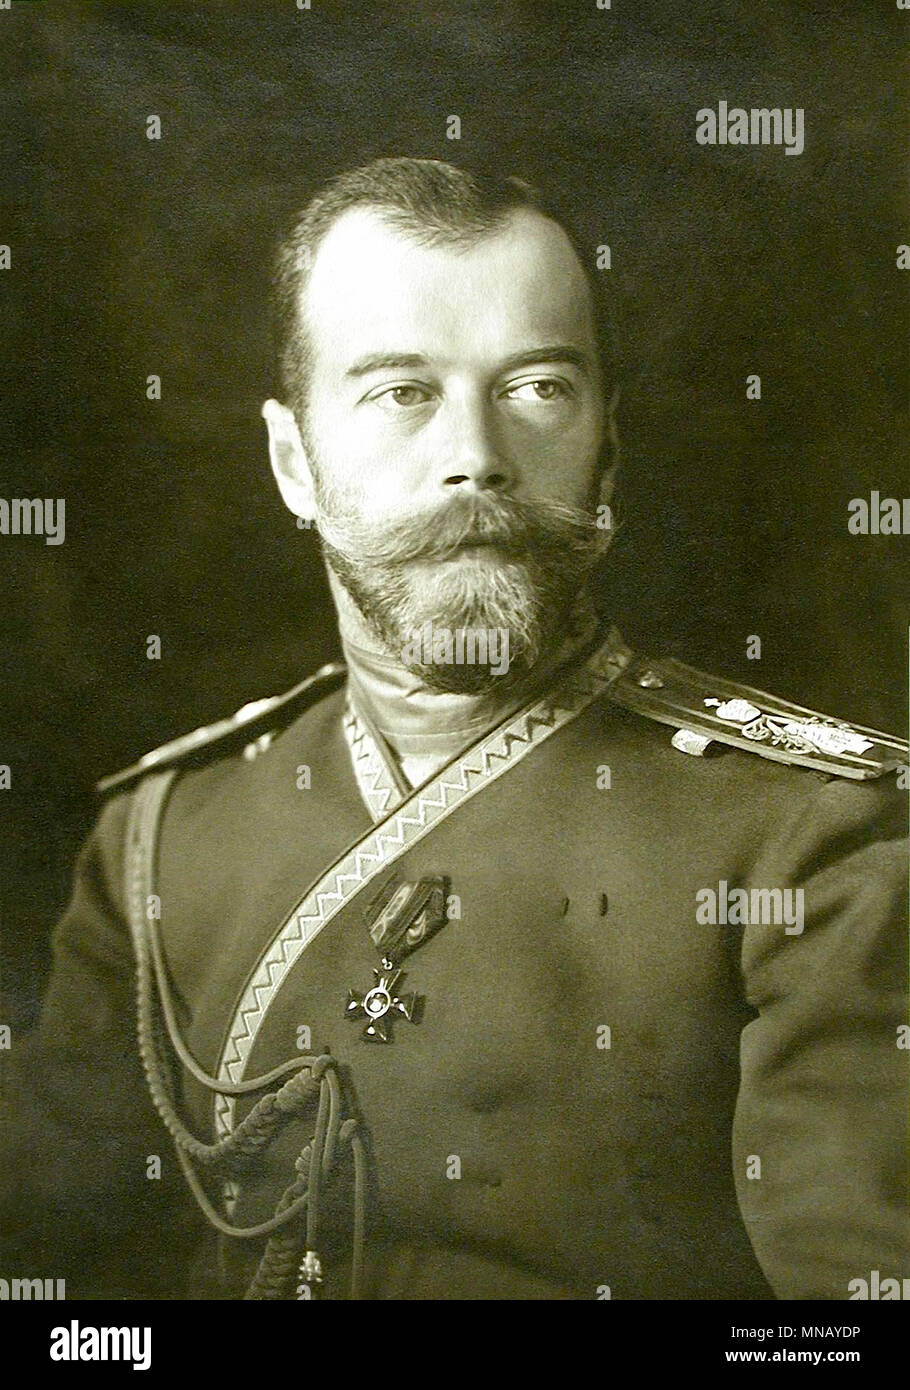 Nicholas II of Russia, Nicholas II or Nikolai II (1868 – 1918), Saint Nicholas II of Russia in the Russian Orthodox Church, was the last Emperor of Russia, ruling from 1 November 1894 until his forced abdication on 15 March 1917 - Stock Image